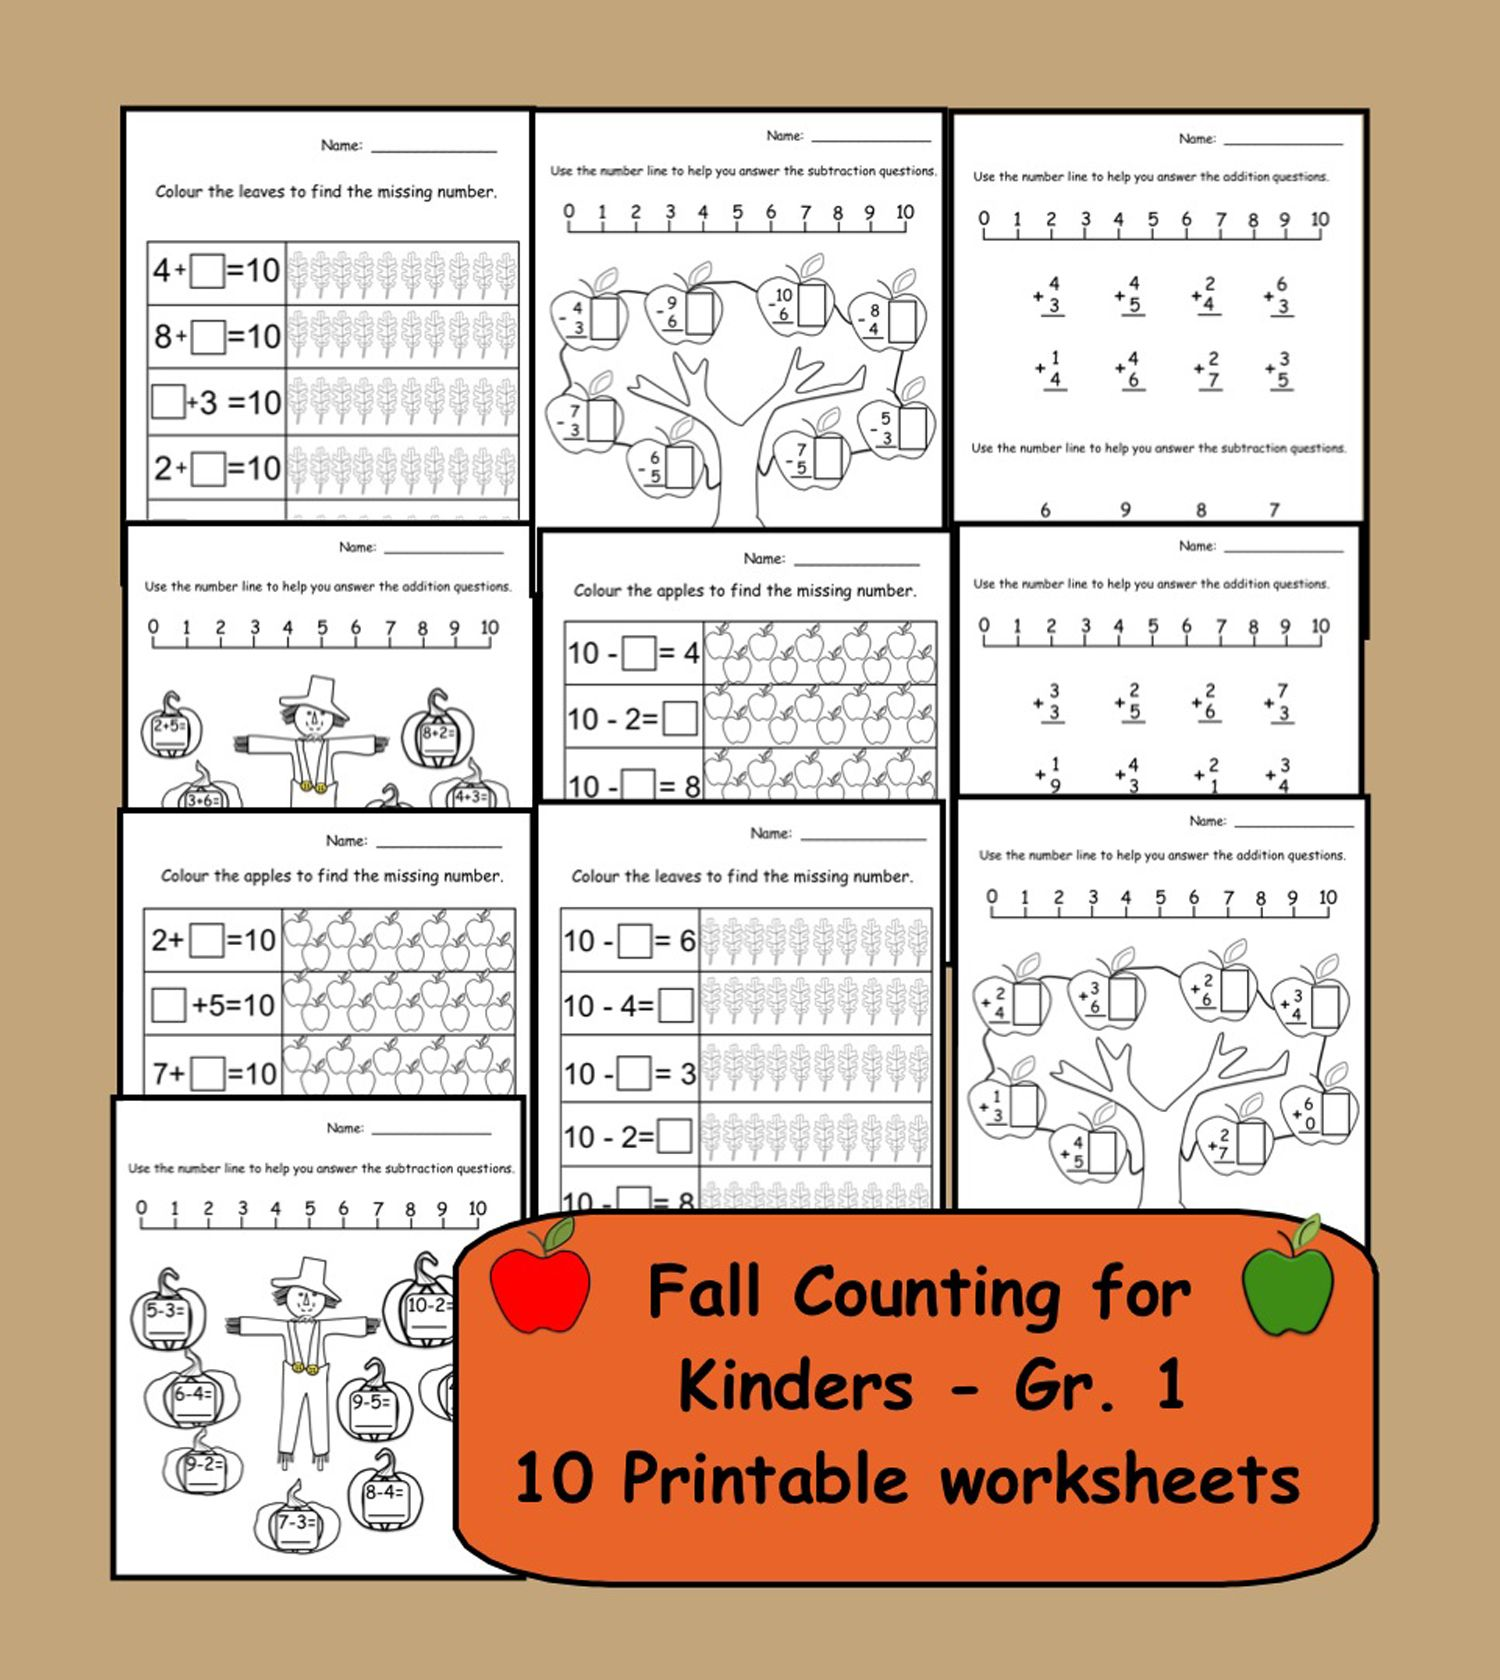 Fall Counting 10 Printable Pages In